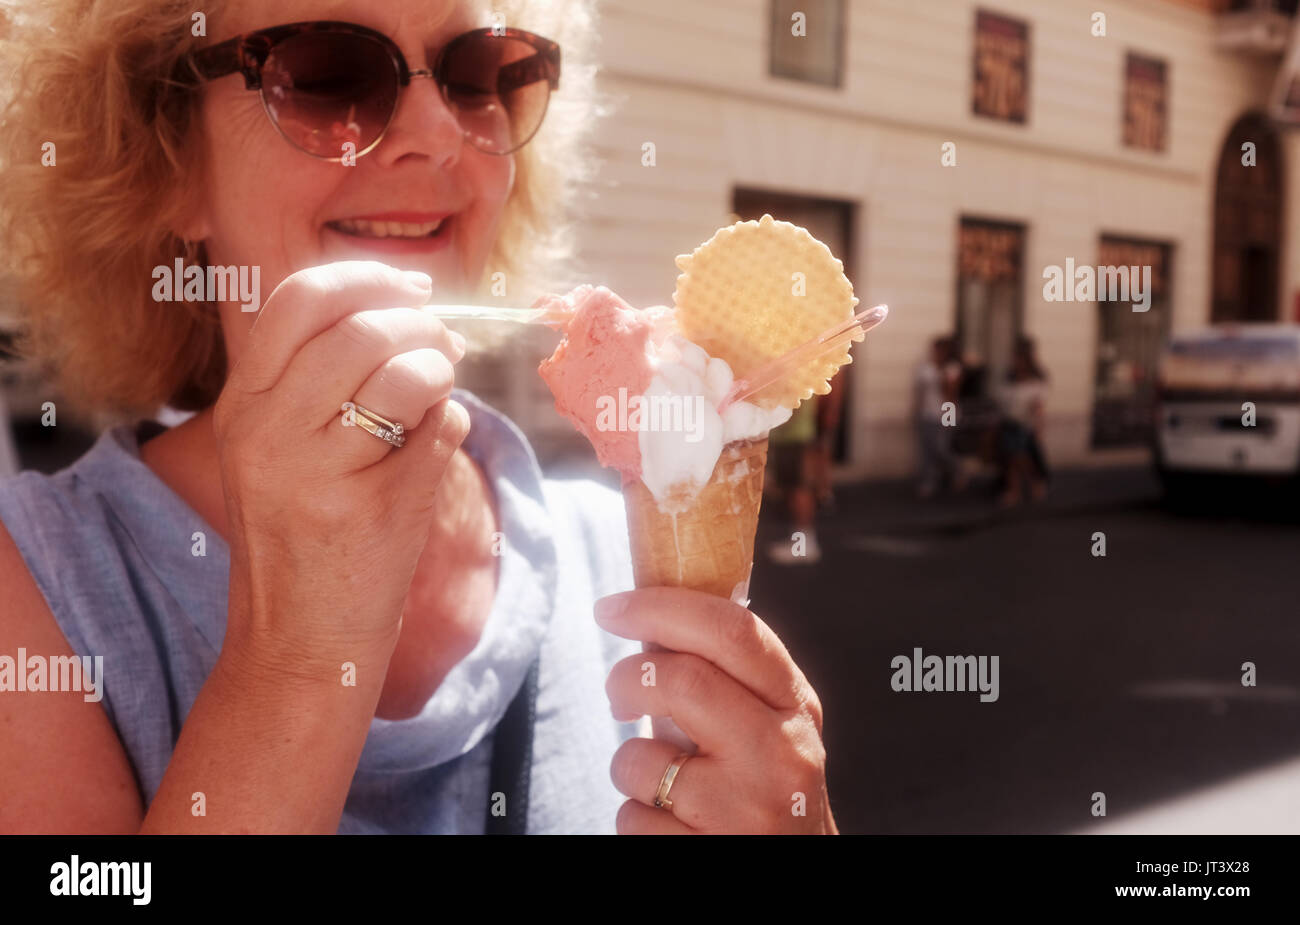 Rome Italy July 2017 - Female tourist eating one of the famous Italian gelato ice creams - Stock Image